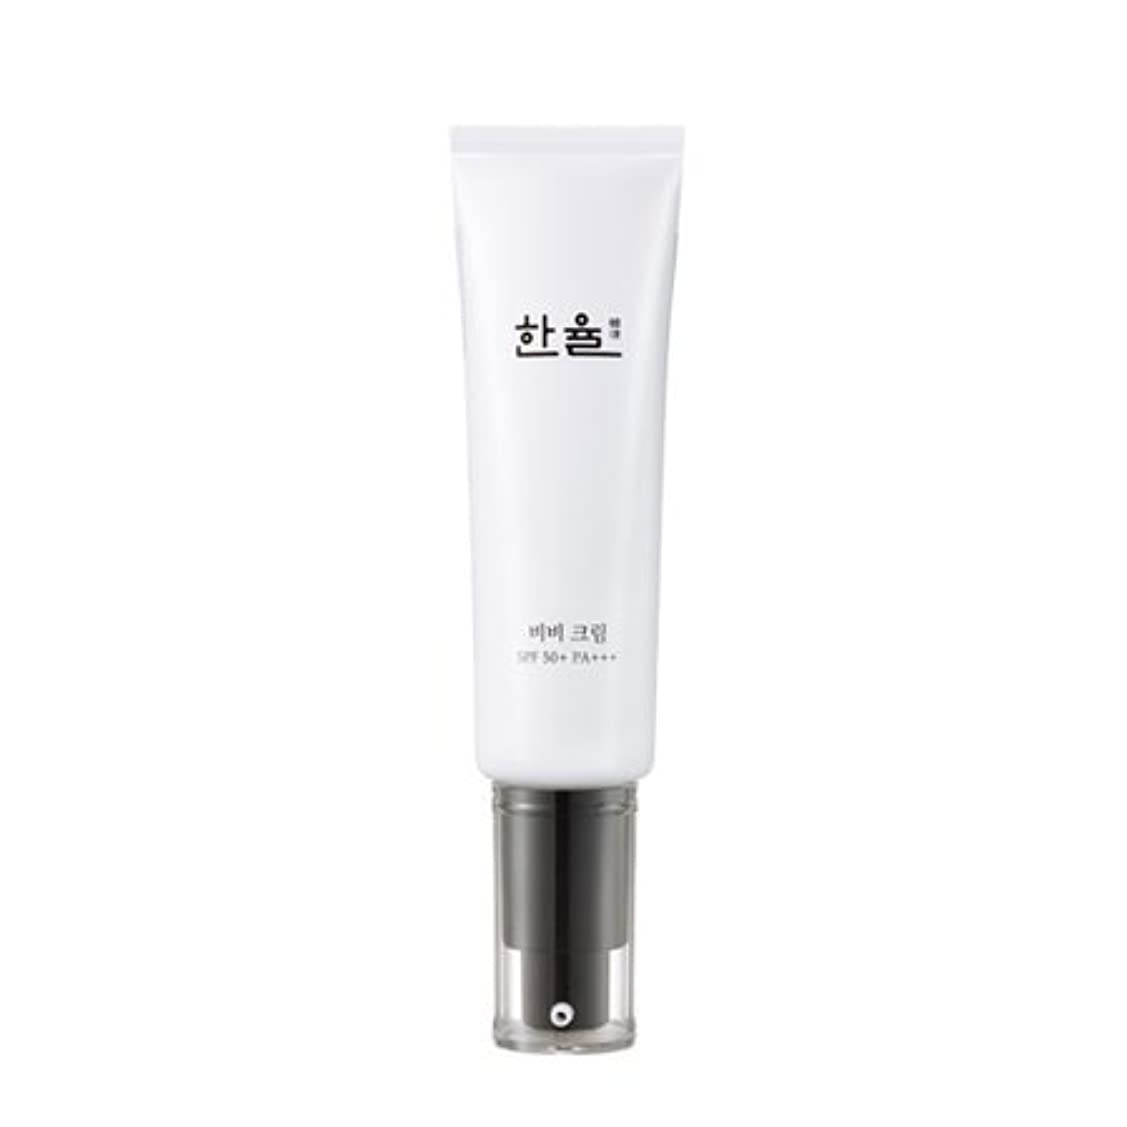 [HANYUL] BB Cream SPF 50+/pa+++ (#02 Soft Beige)